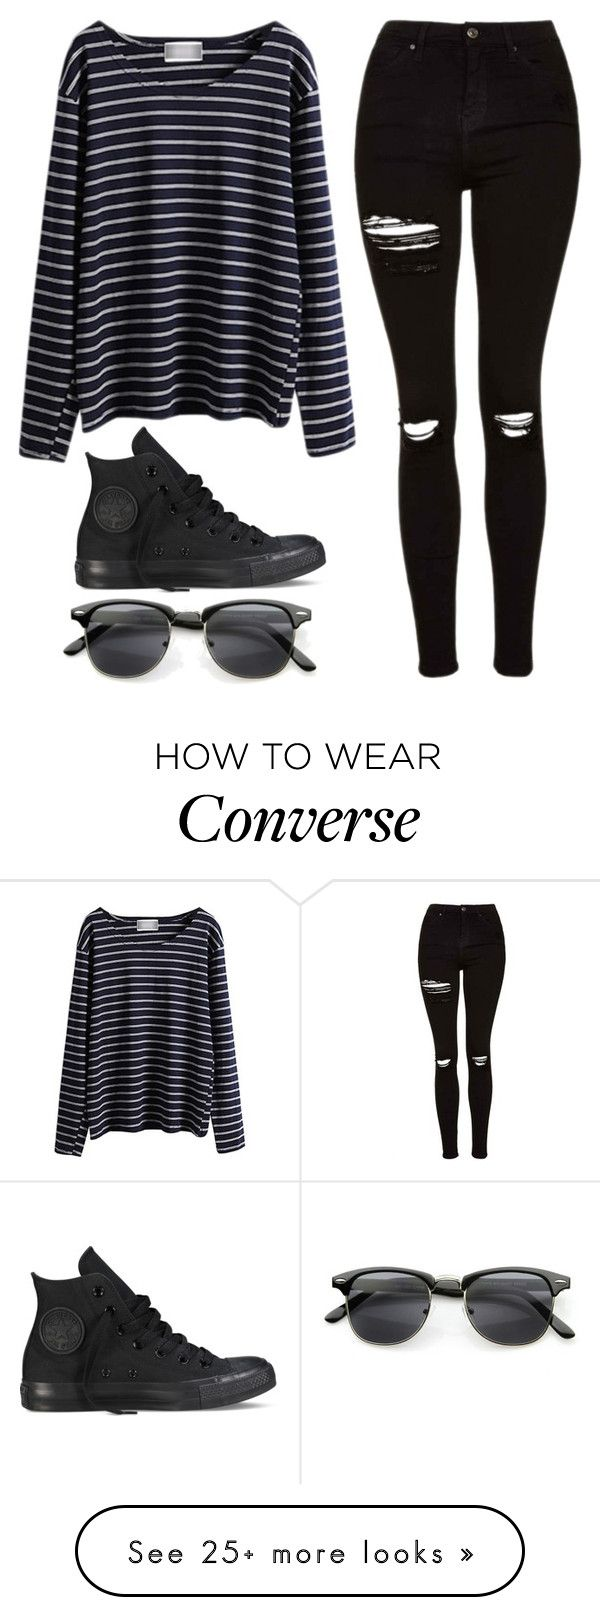 Cute outfits with black leggings and converse